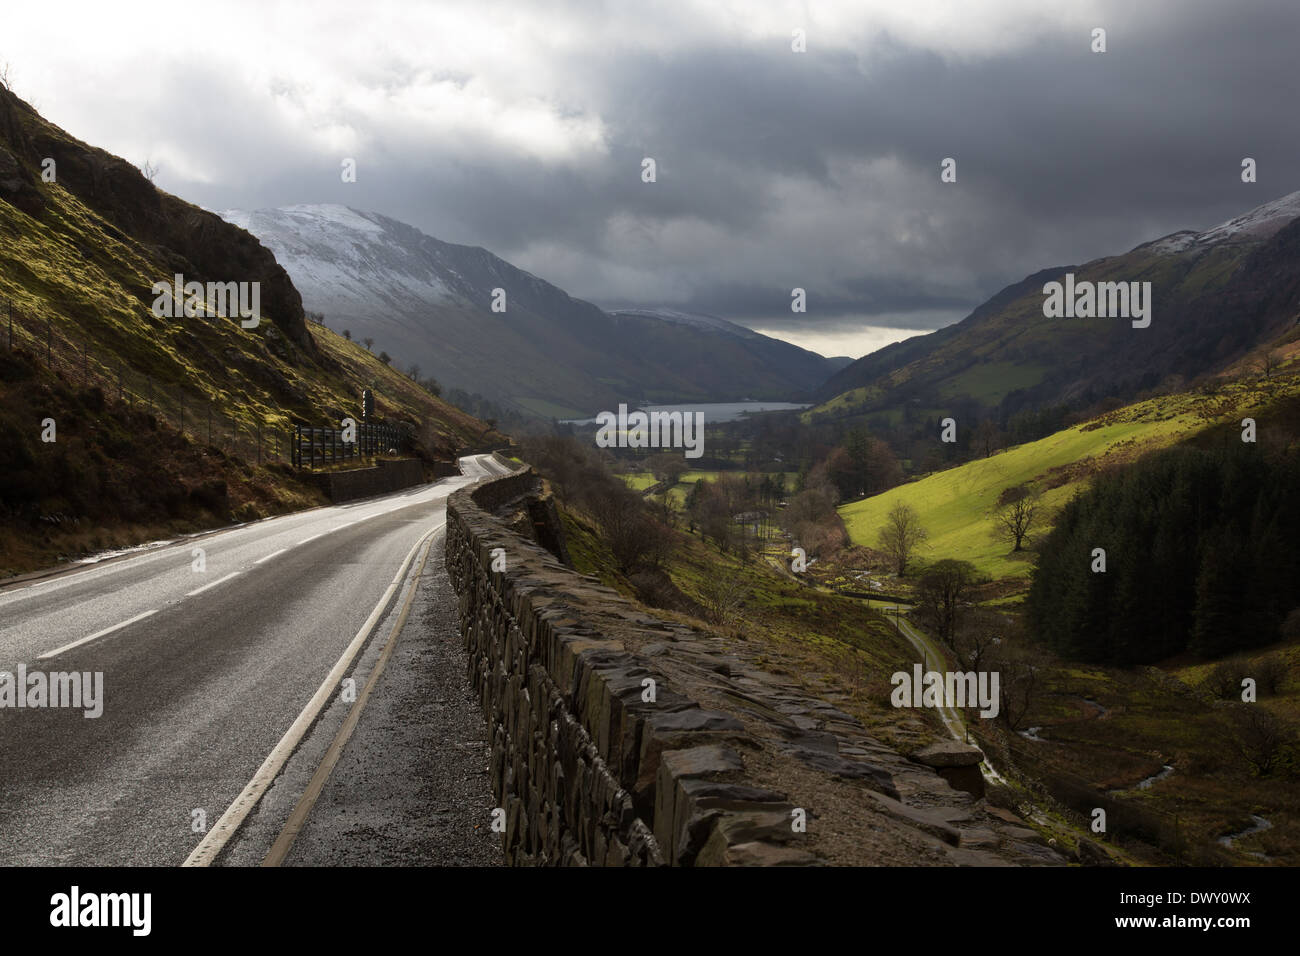 Talyllyn Pass with snow dusted mountains and brooding darl clouds - Stock Image